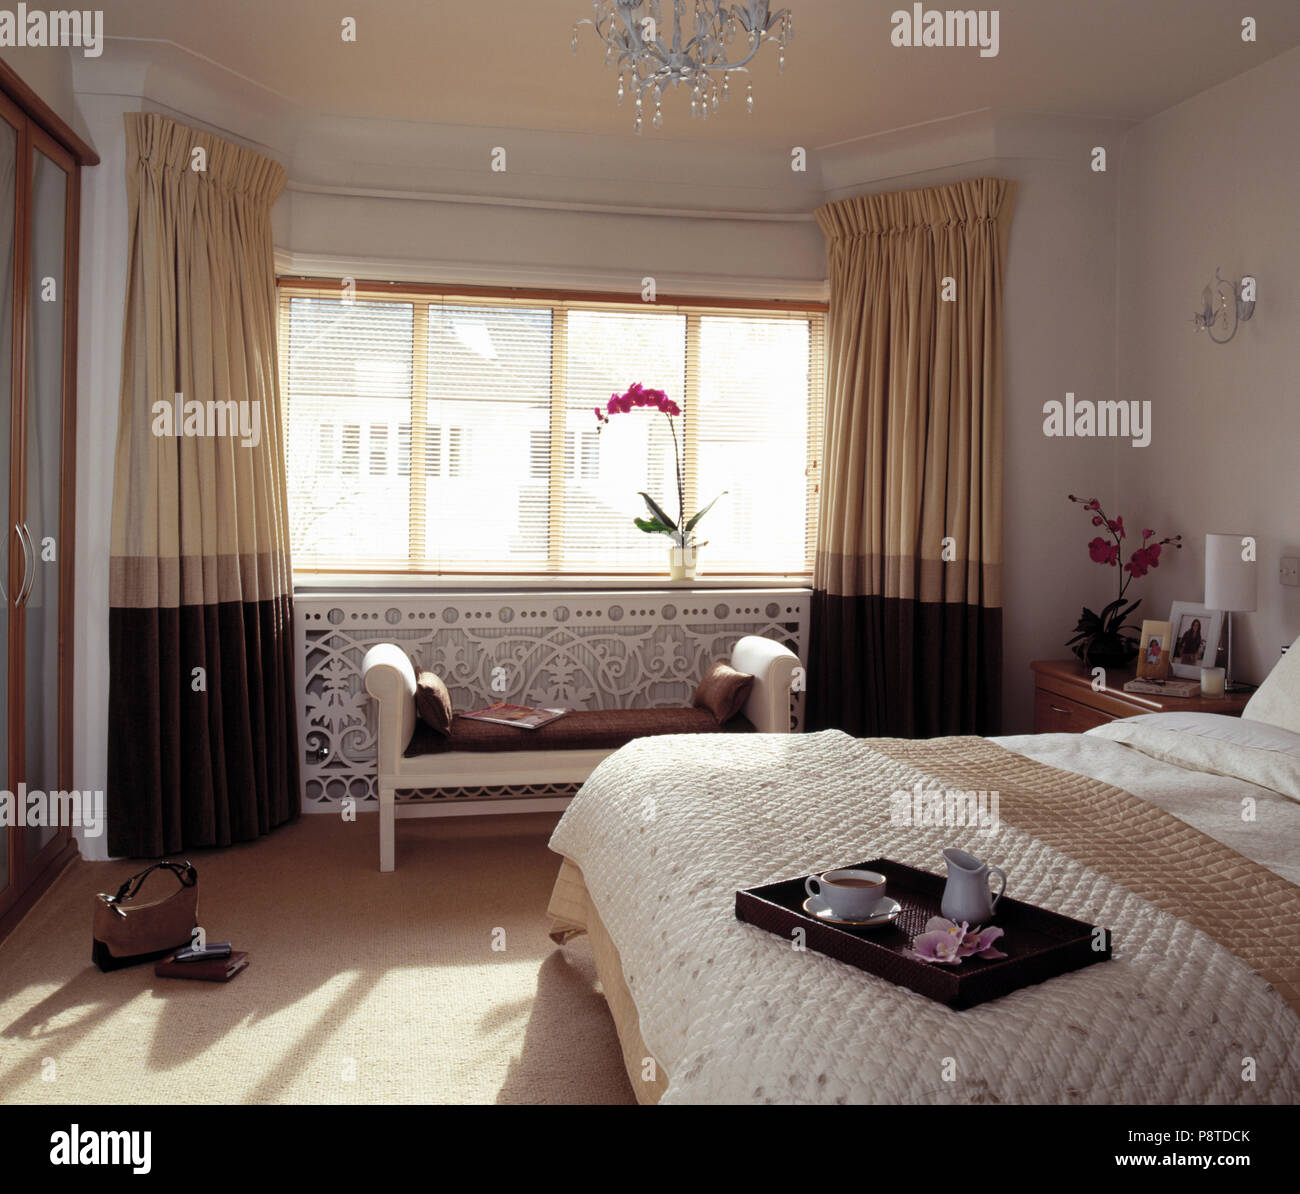 Large White Bedroom With A Built In Wardrobe Bay Window With Cream And Brown Curtains And Filigree Radiator Cover Stock Photo Alamy